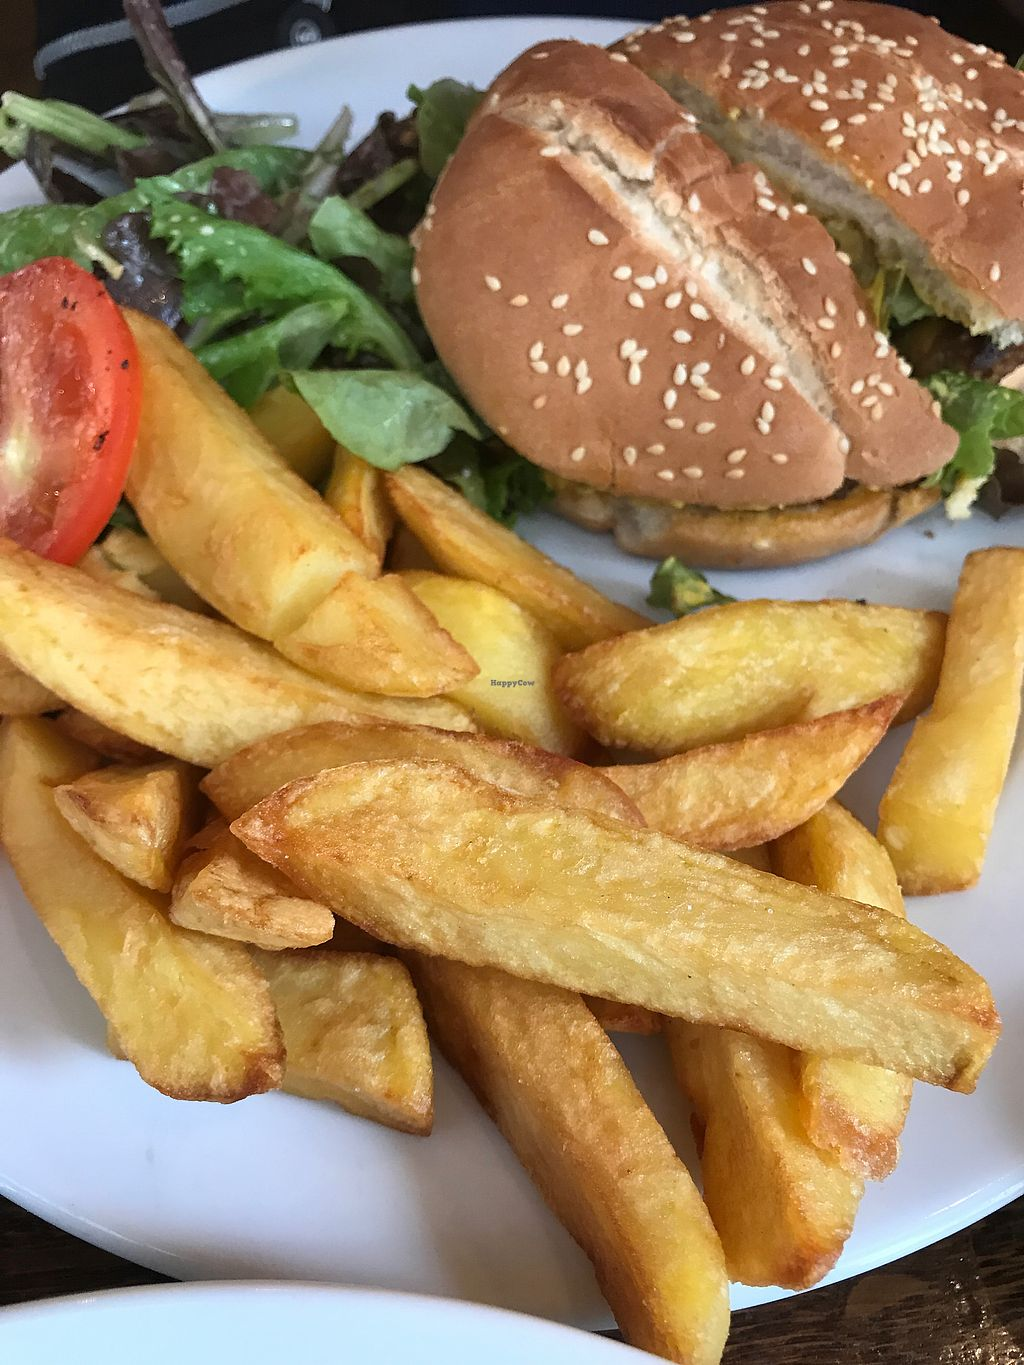 """Photo of CLOSED: Brasserie Lola  by <a href=""""/members/profile/foolsircle"""">foolsircle</a> <br/>Cheeseburger <br/> July 19, 2017  - <a href='/contact/abuse/image/52172/282153'>Report</a>"""